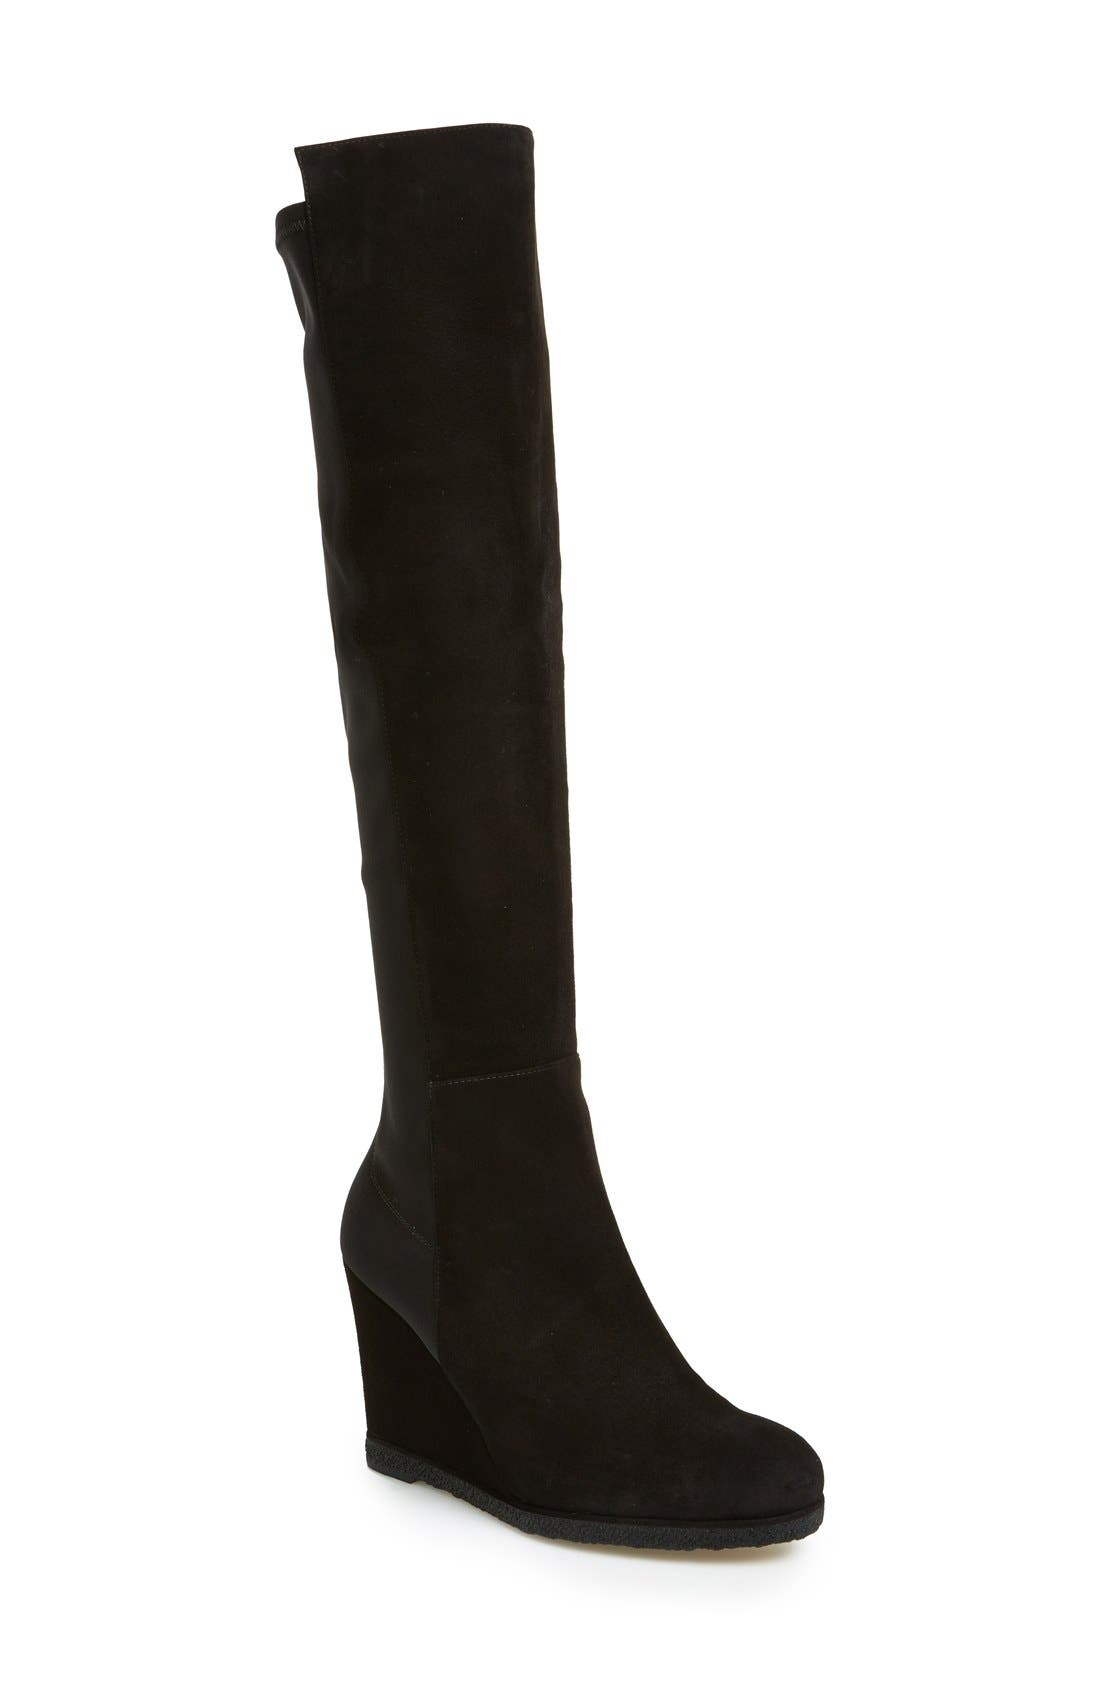 'Demiswoon' Over the Knee Boot,                             Main thumbnail 1, color,                             001